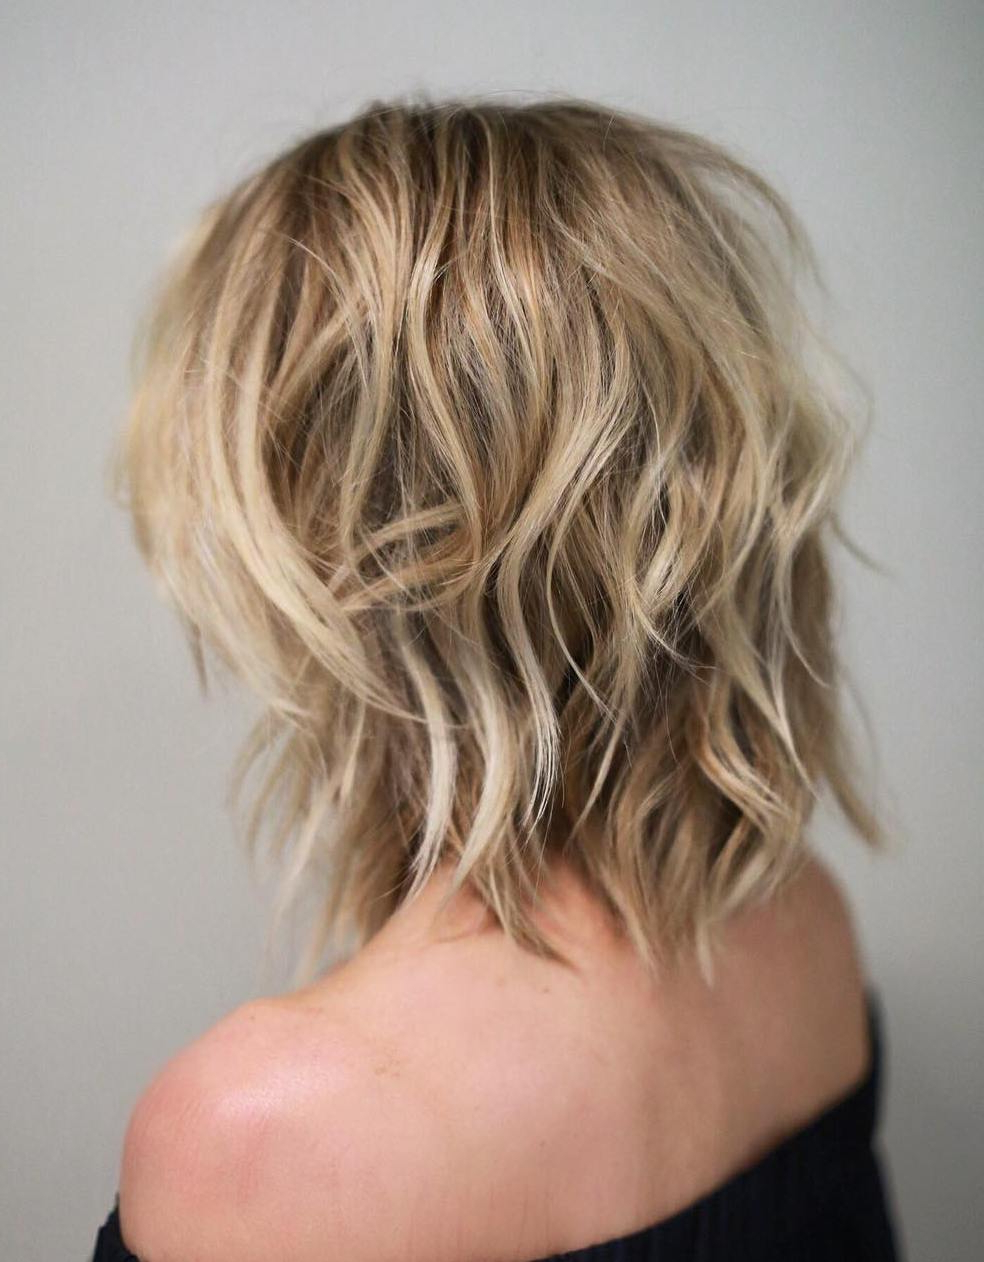 Newest Long Brown Shag Hairstyles With Blonde Highlights With 60 Best Variations Of A Medium Shag Haircut For Your Distinctive Style (View 14 of 20)